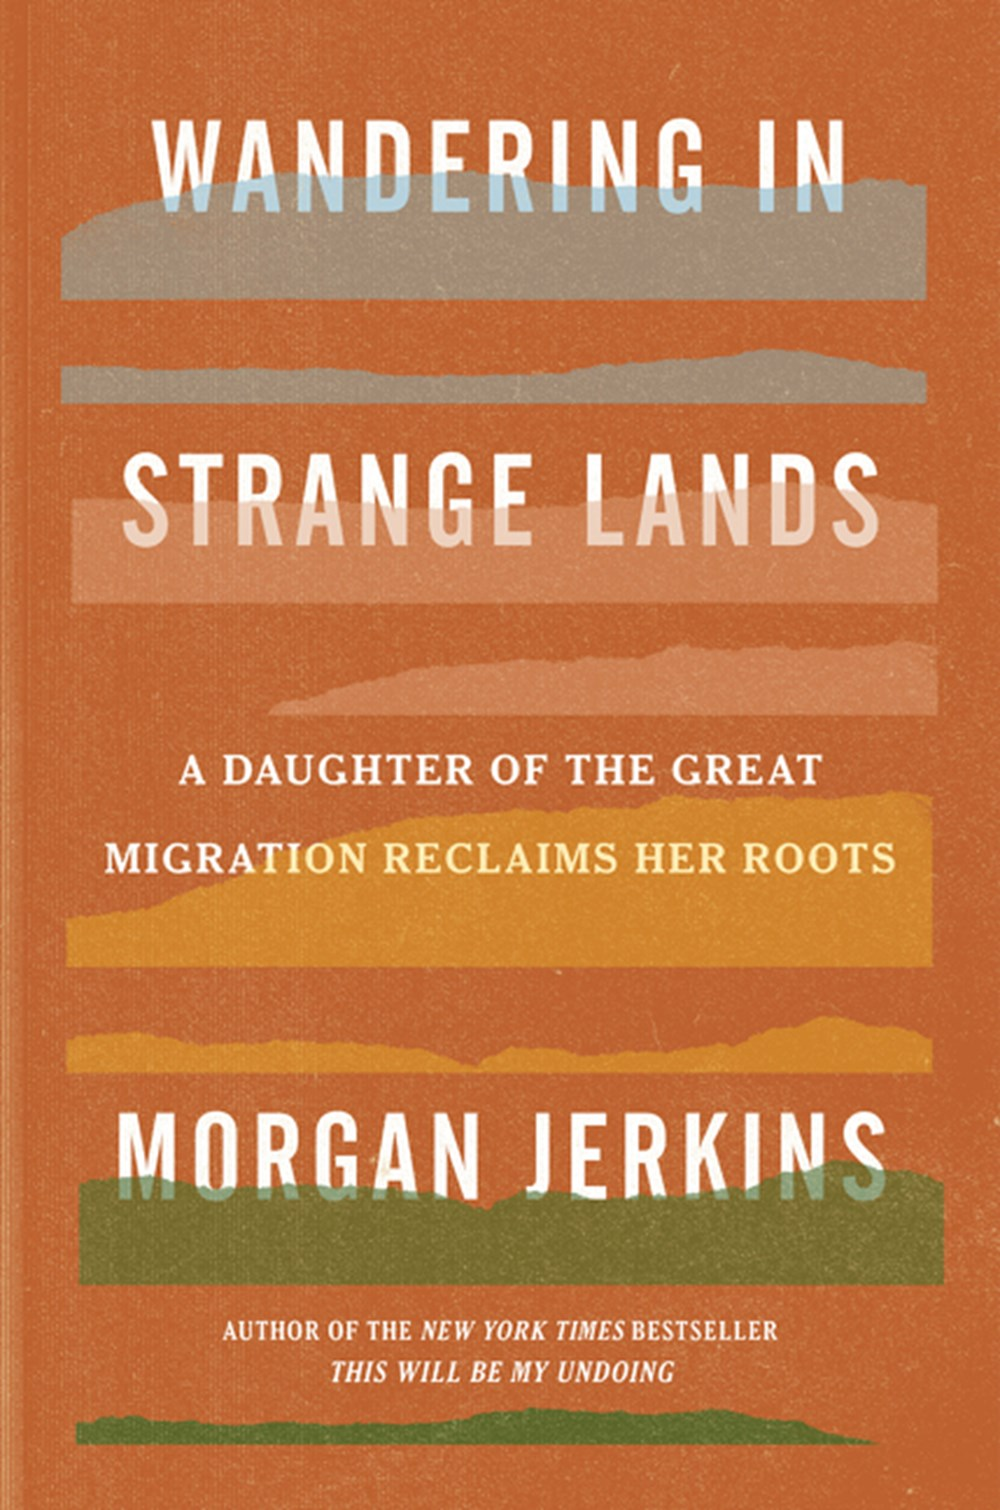 Wandering in Strange Lands A Daughter of the Great Migration Reclaims Her Roots